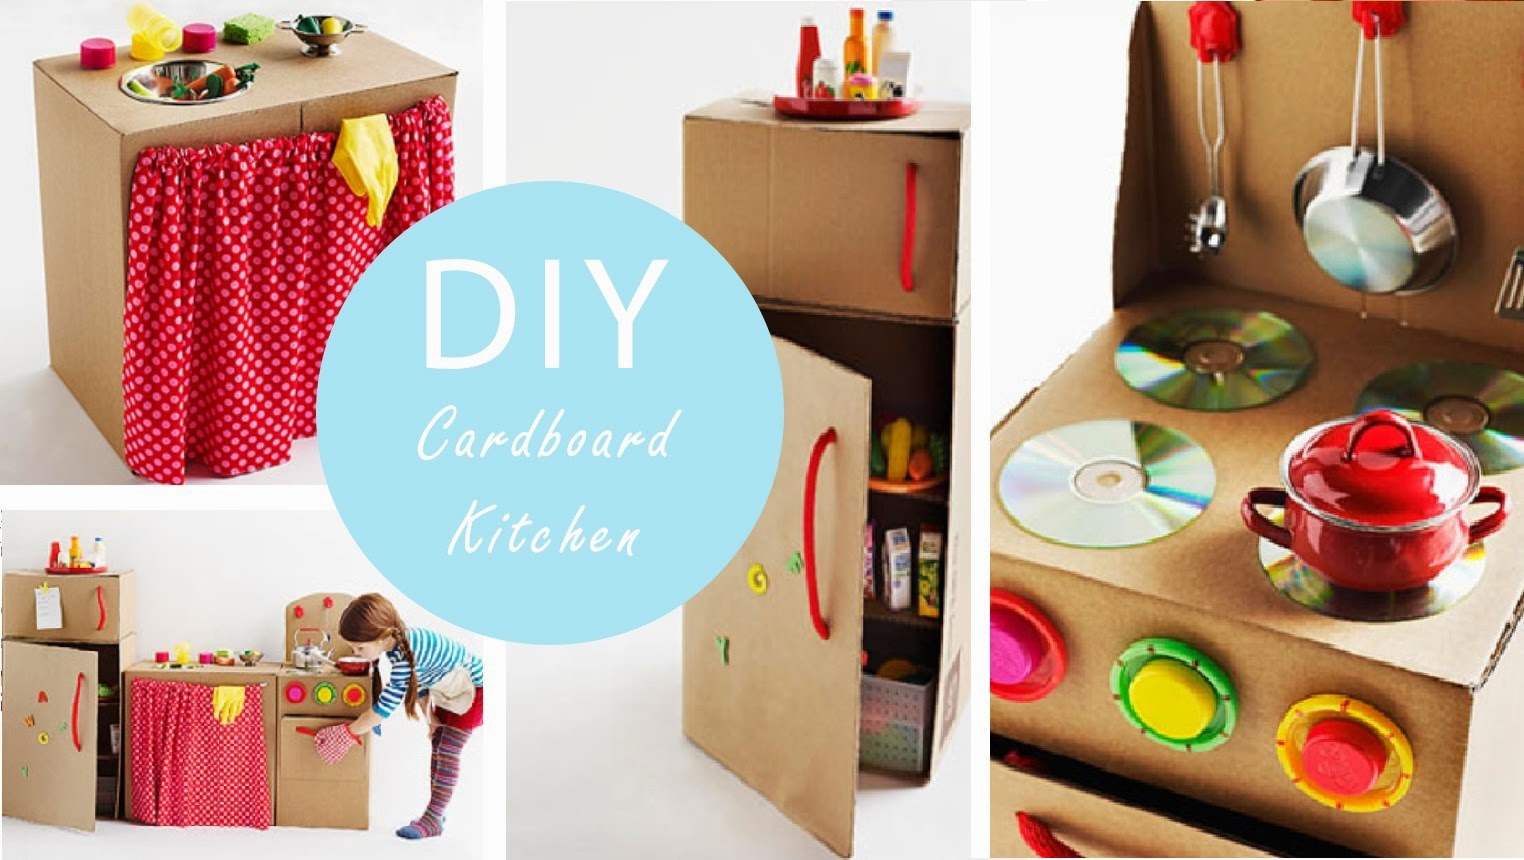 http://declutterorganizerepurpose.wordpress.com/2011/02/28/repurpose-cardboard-boxes-into-kid-craftstoys/